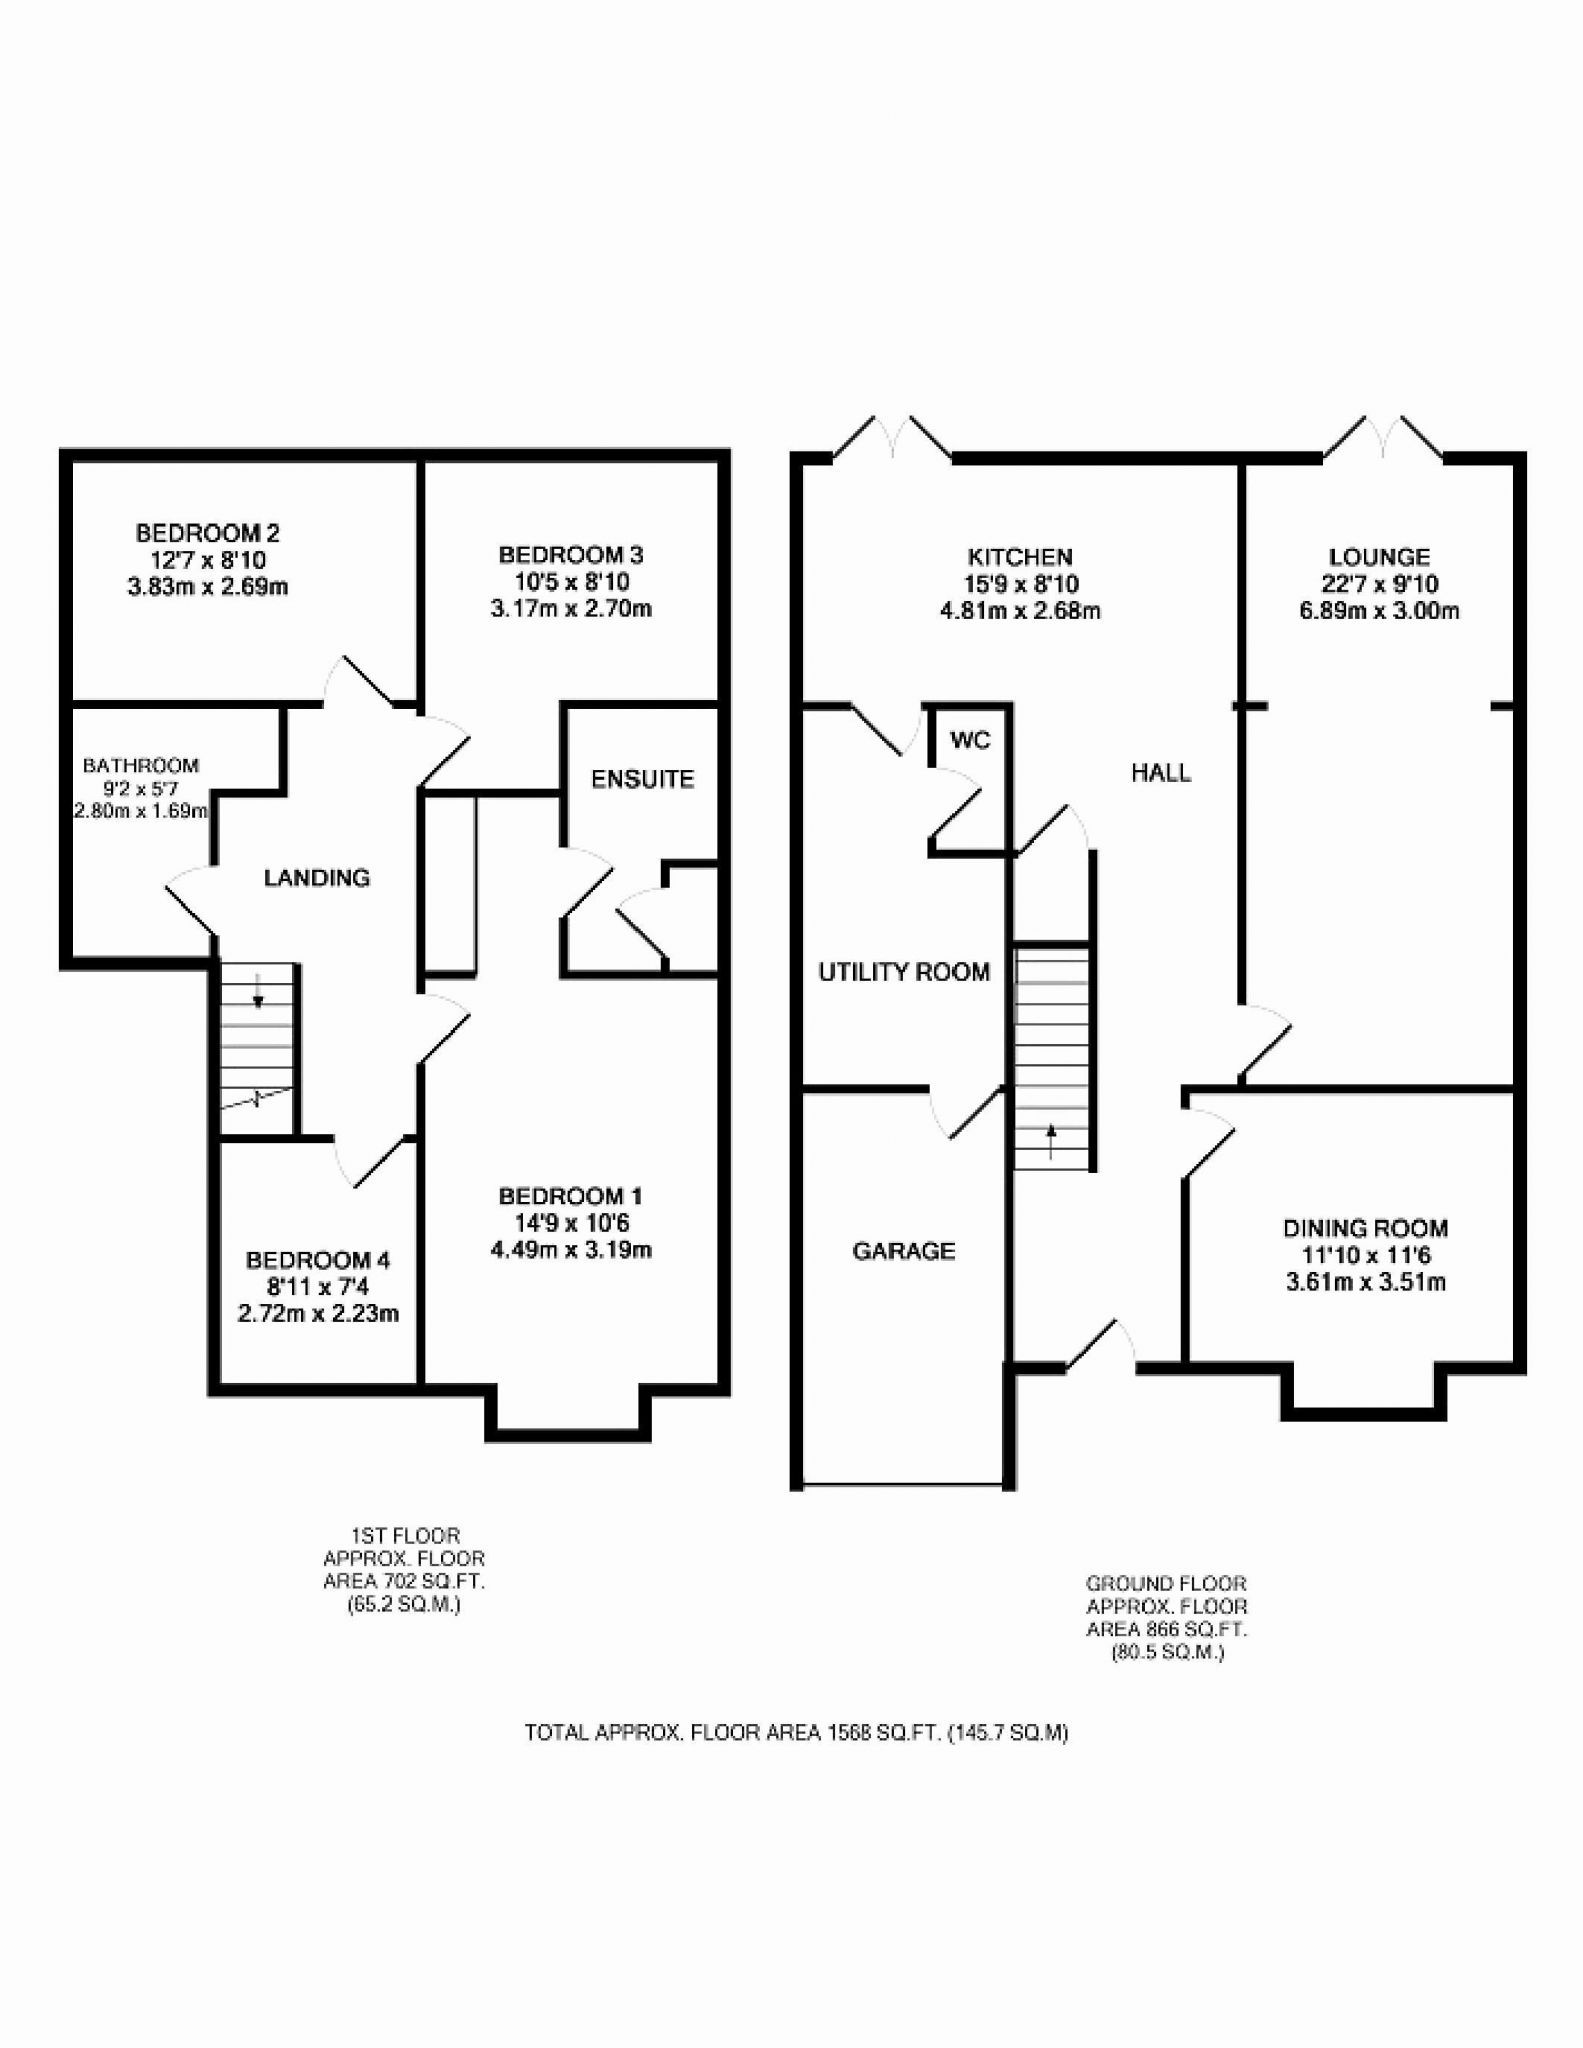 Morton Building Floor Plans Modern House Floor Plans Restaurant Floor Plan Small House Floor Plans